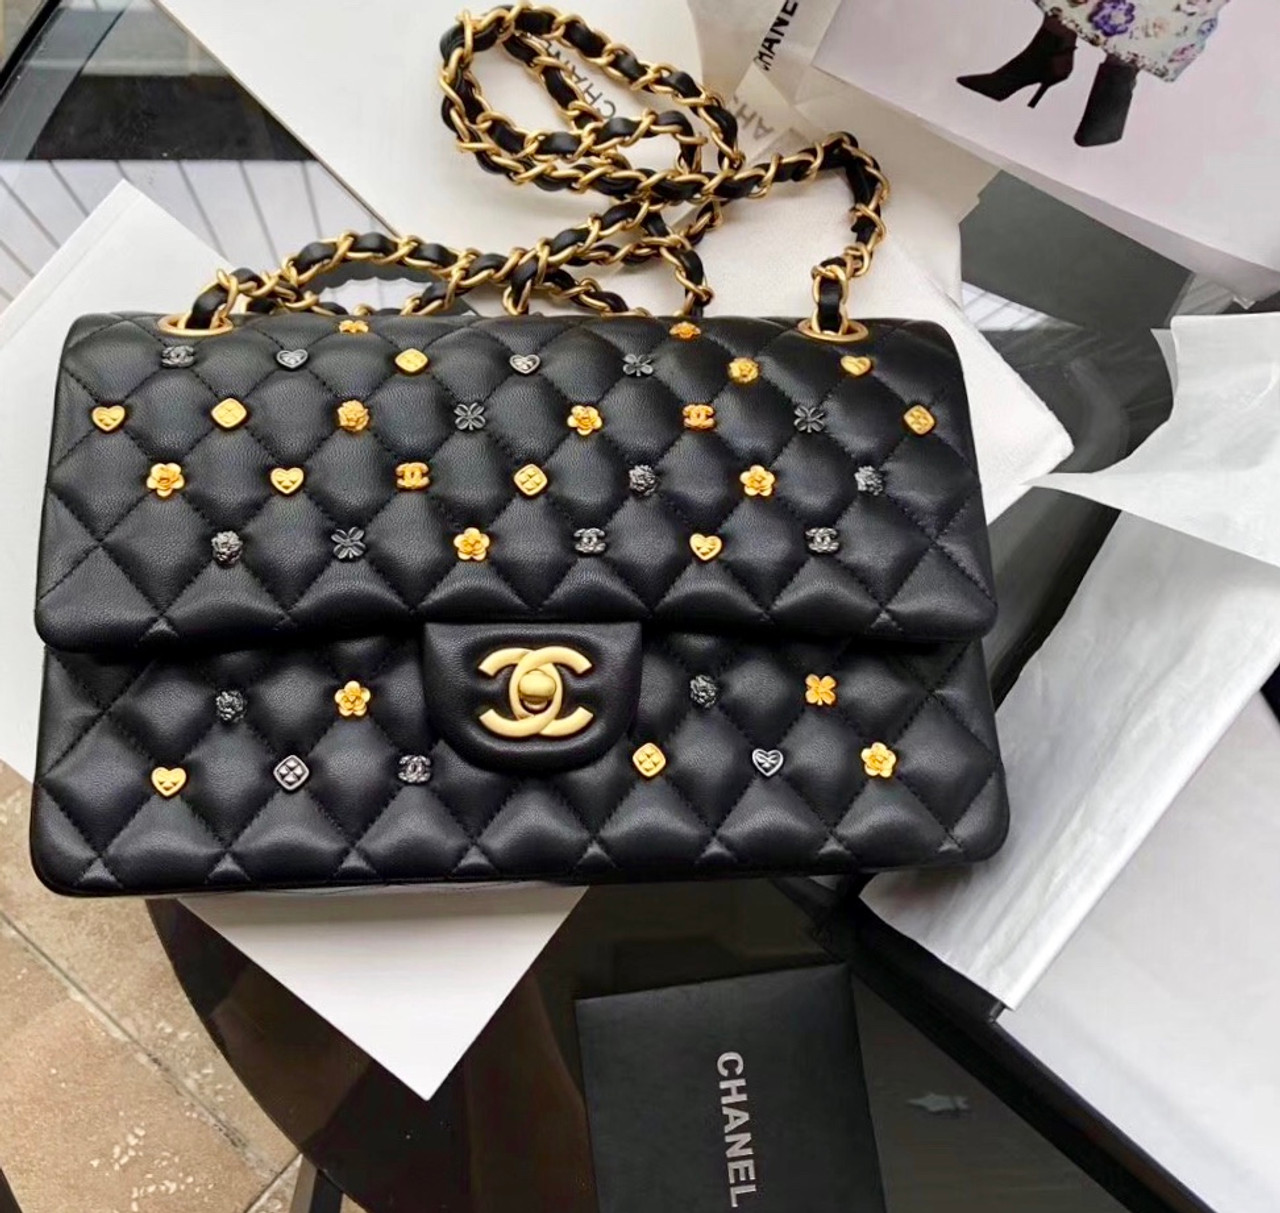 aac952cc33d4 Chanel Black Leather Medium Classic 18K Gold Charms Double Flap Bag ...